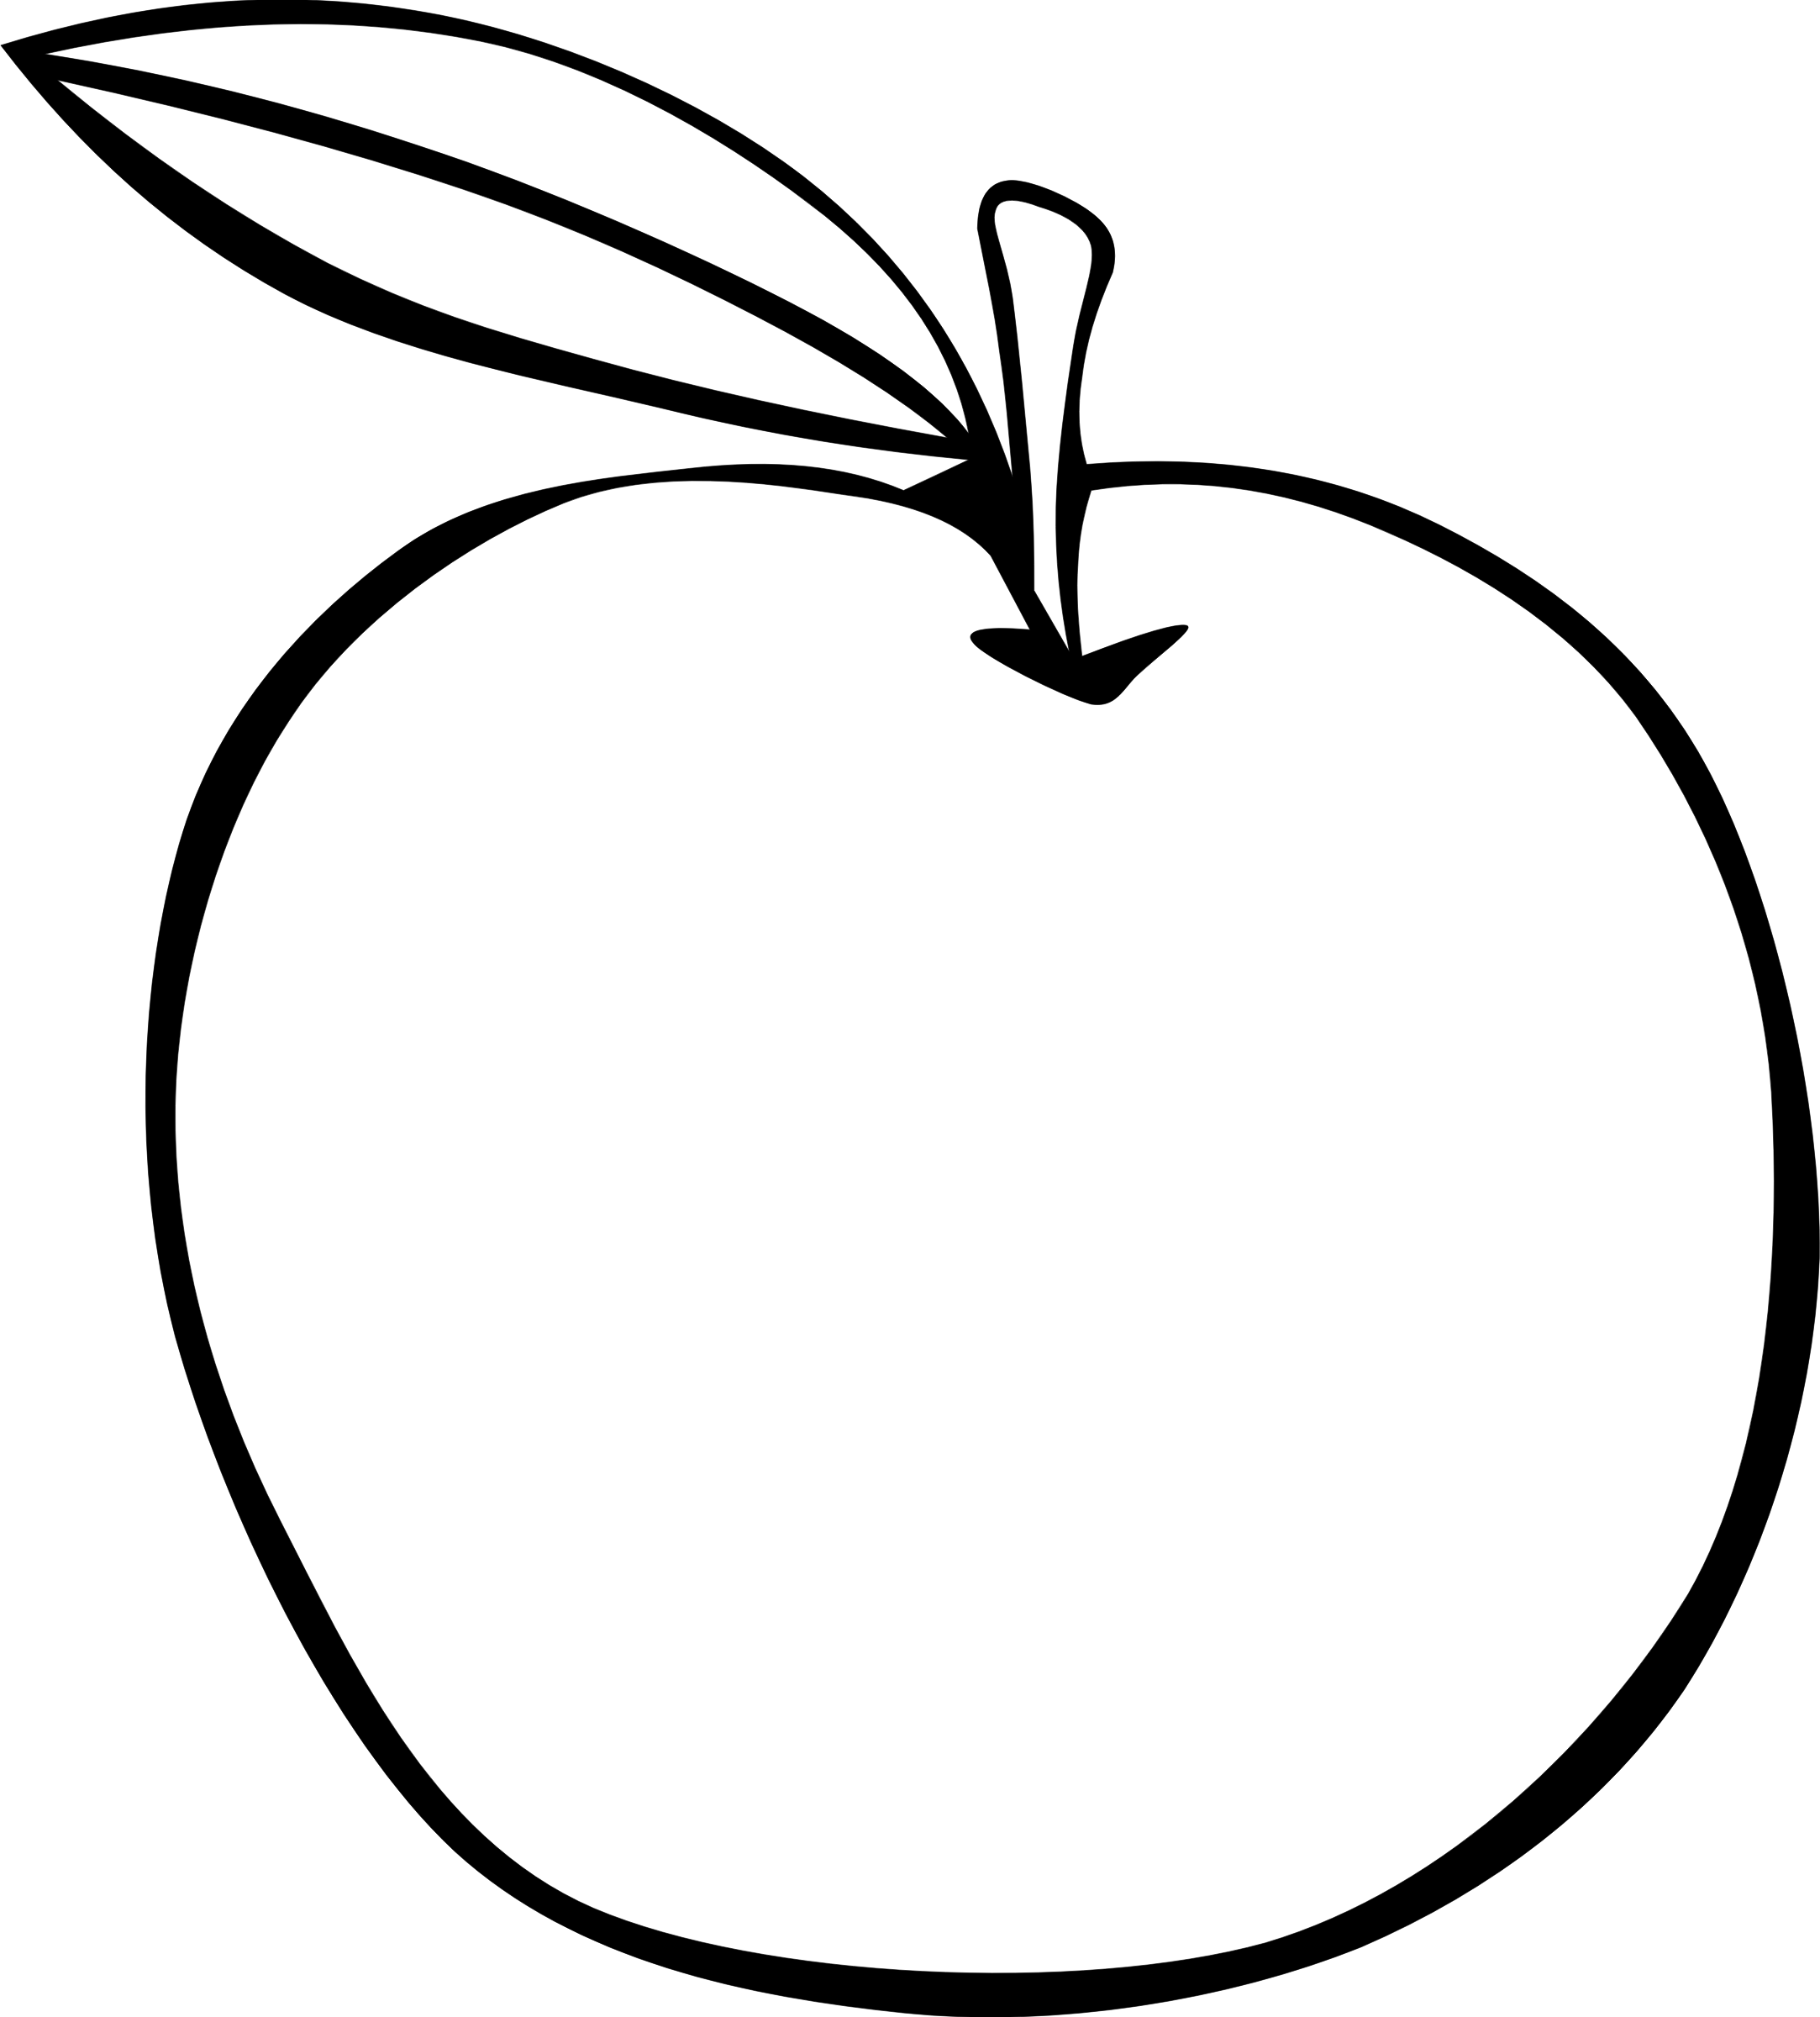 Drawn apple #8